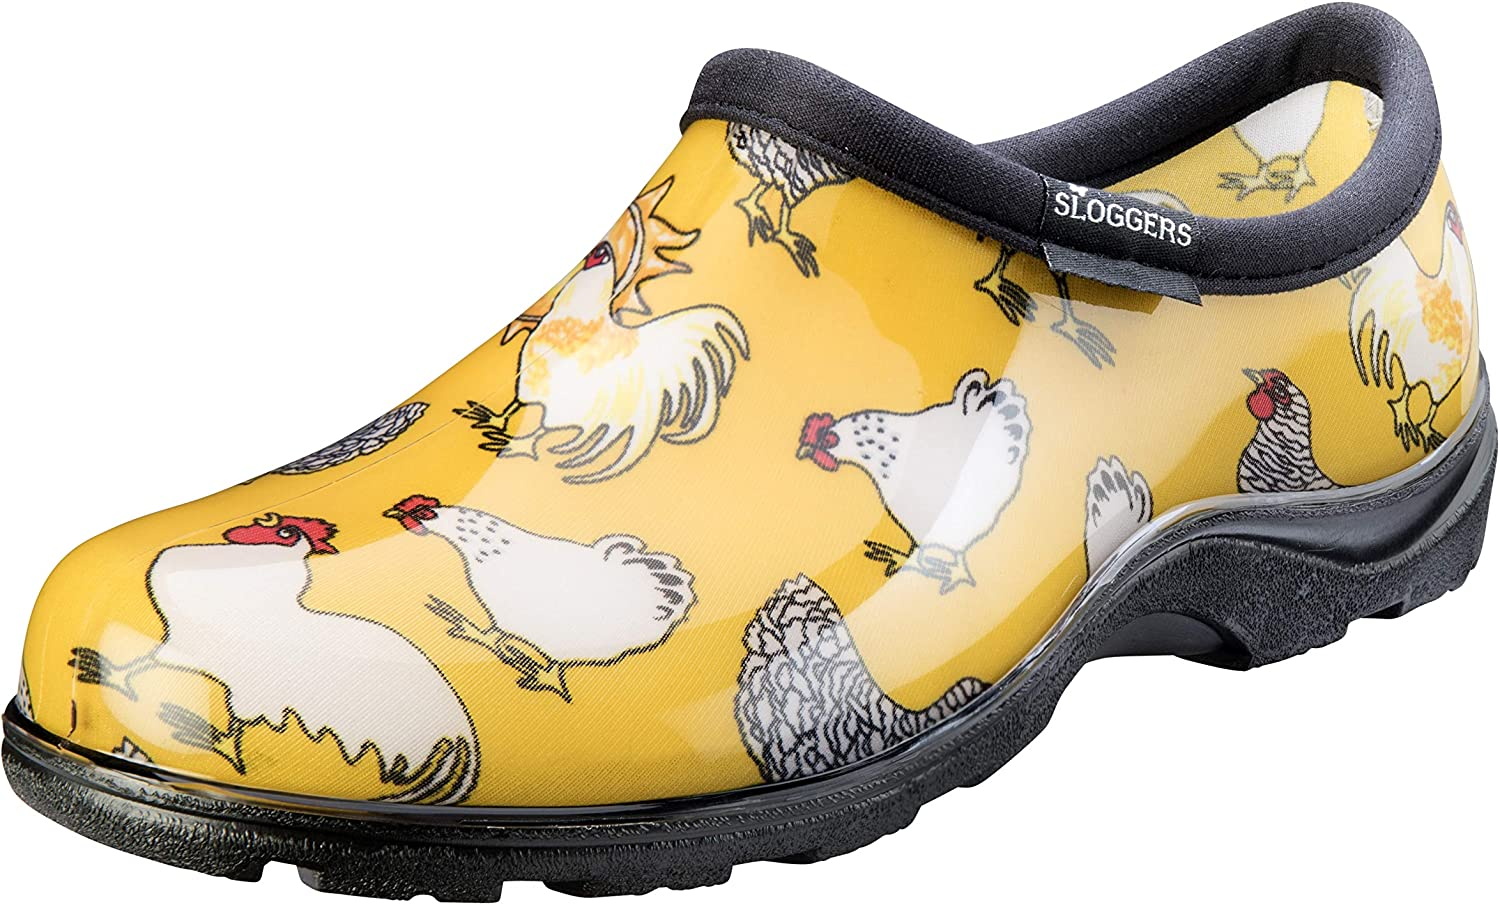 Sloggers Women's Waterproof Rain and Garden Shoe with Comfort Insole, Chickens Daffodil Yellow, Size 6, Style 5116CDY06